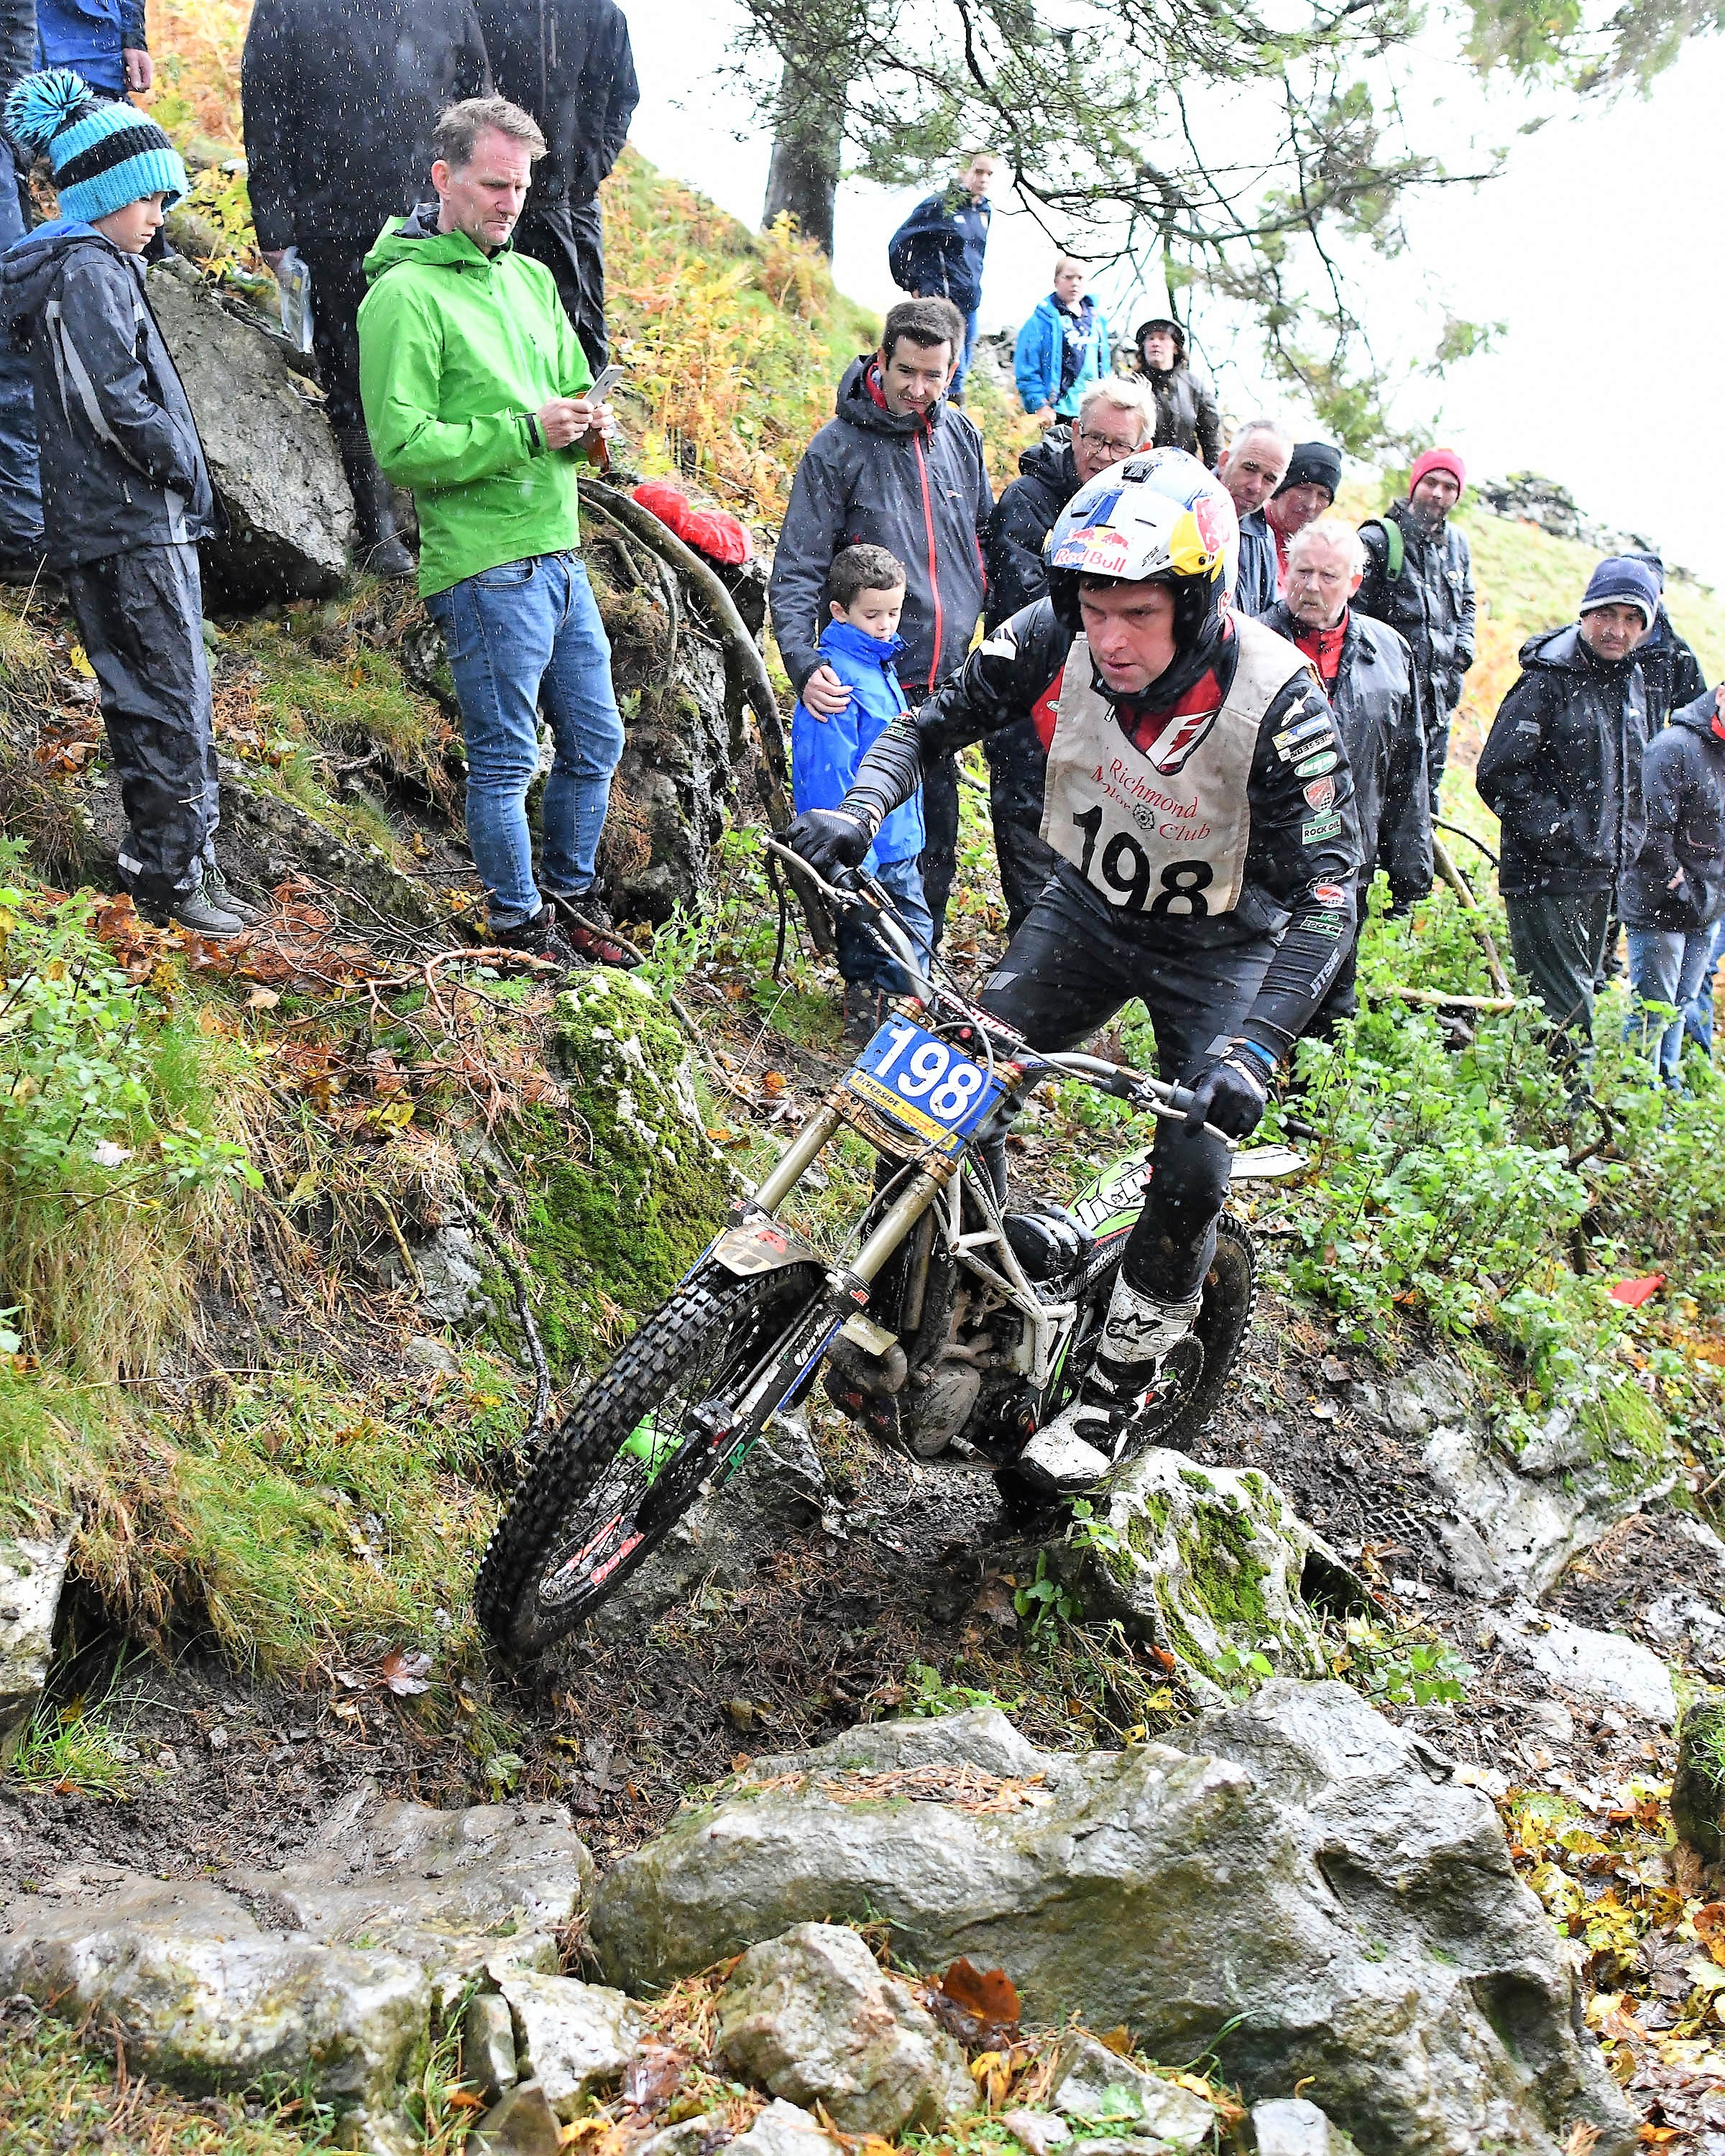 Dougie Lampkin won the Scott Trial for a sixth time and is thought to be the oldest winner aged 42. A total of 60 per cent of the entry failed to finish in terrible conditions. Picture: Eric Kitchen